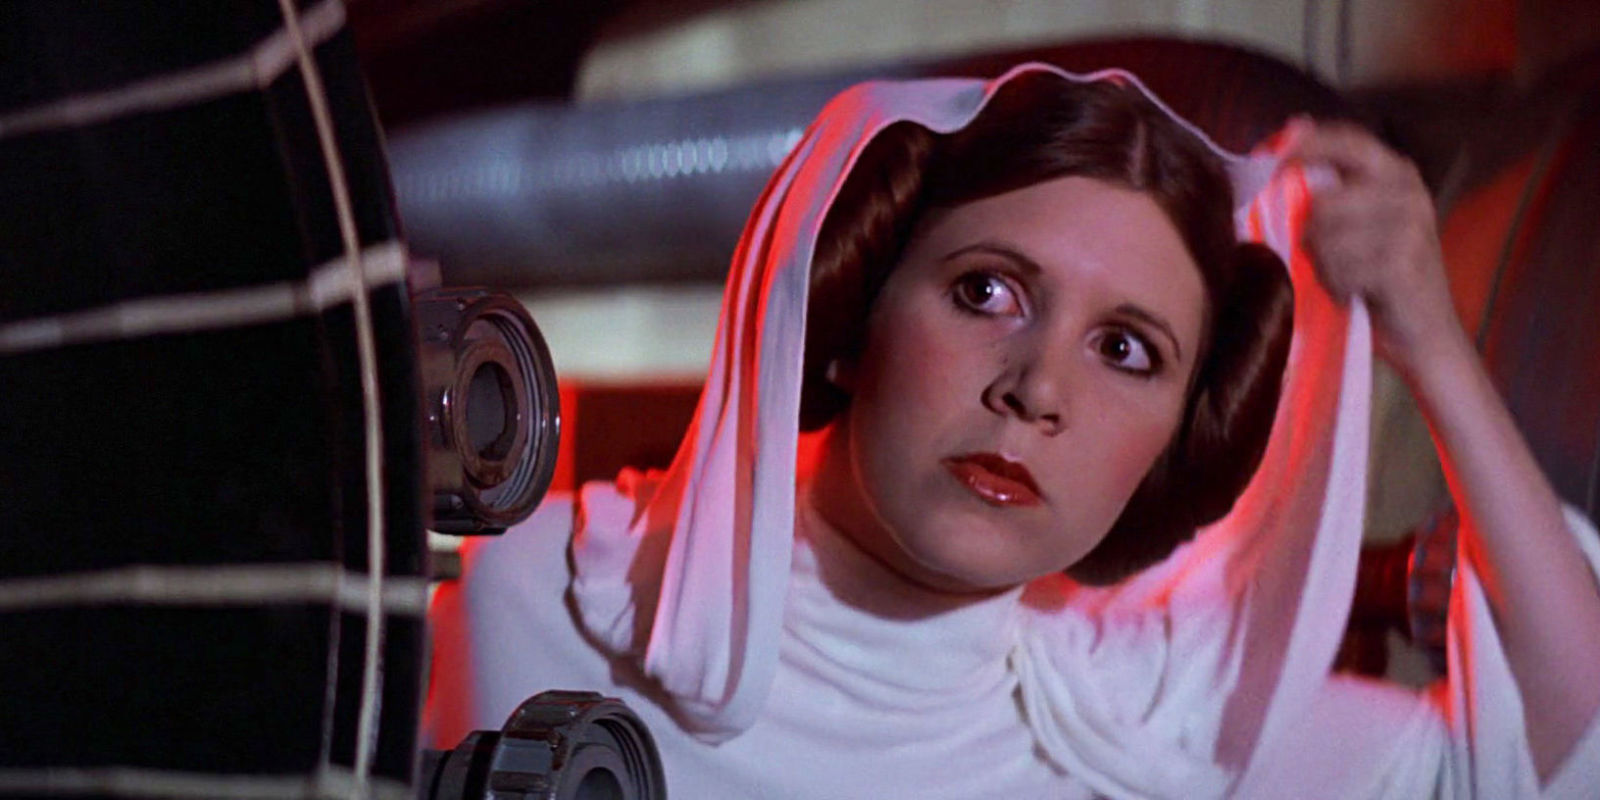 Carrie Fisher As Princess Leia In Star Wars Episode Iv: A New Hope